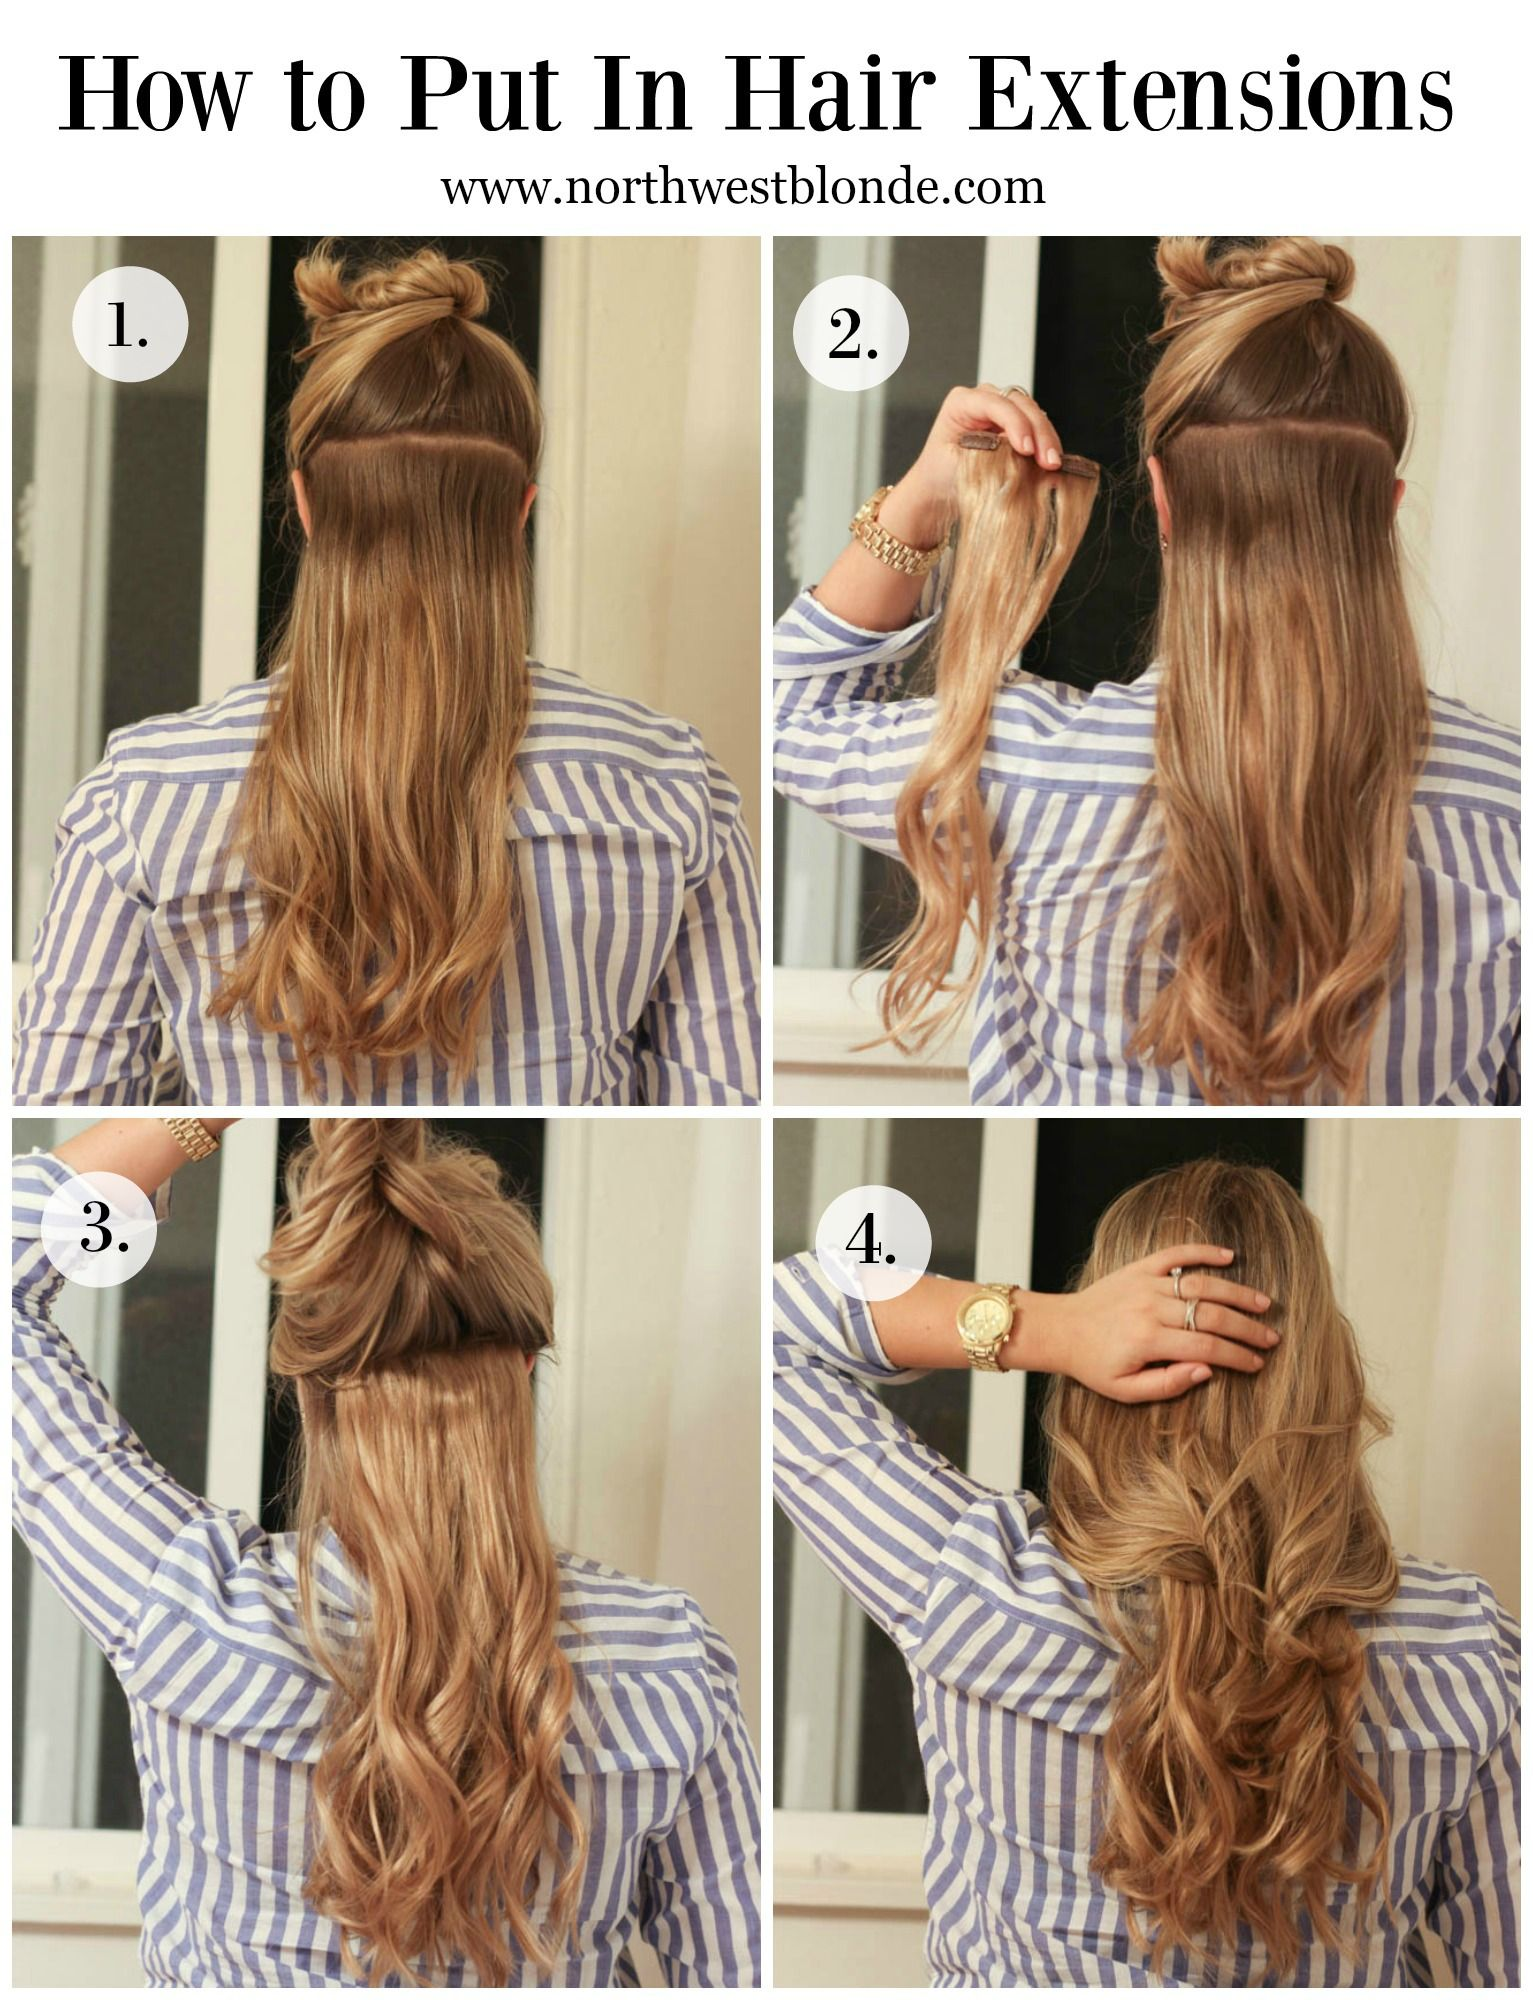 Hair extension are a great way to instantly add volume to